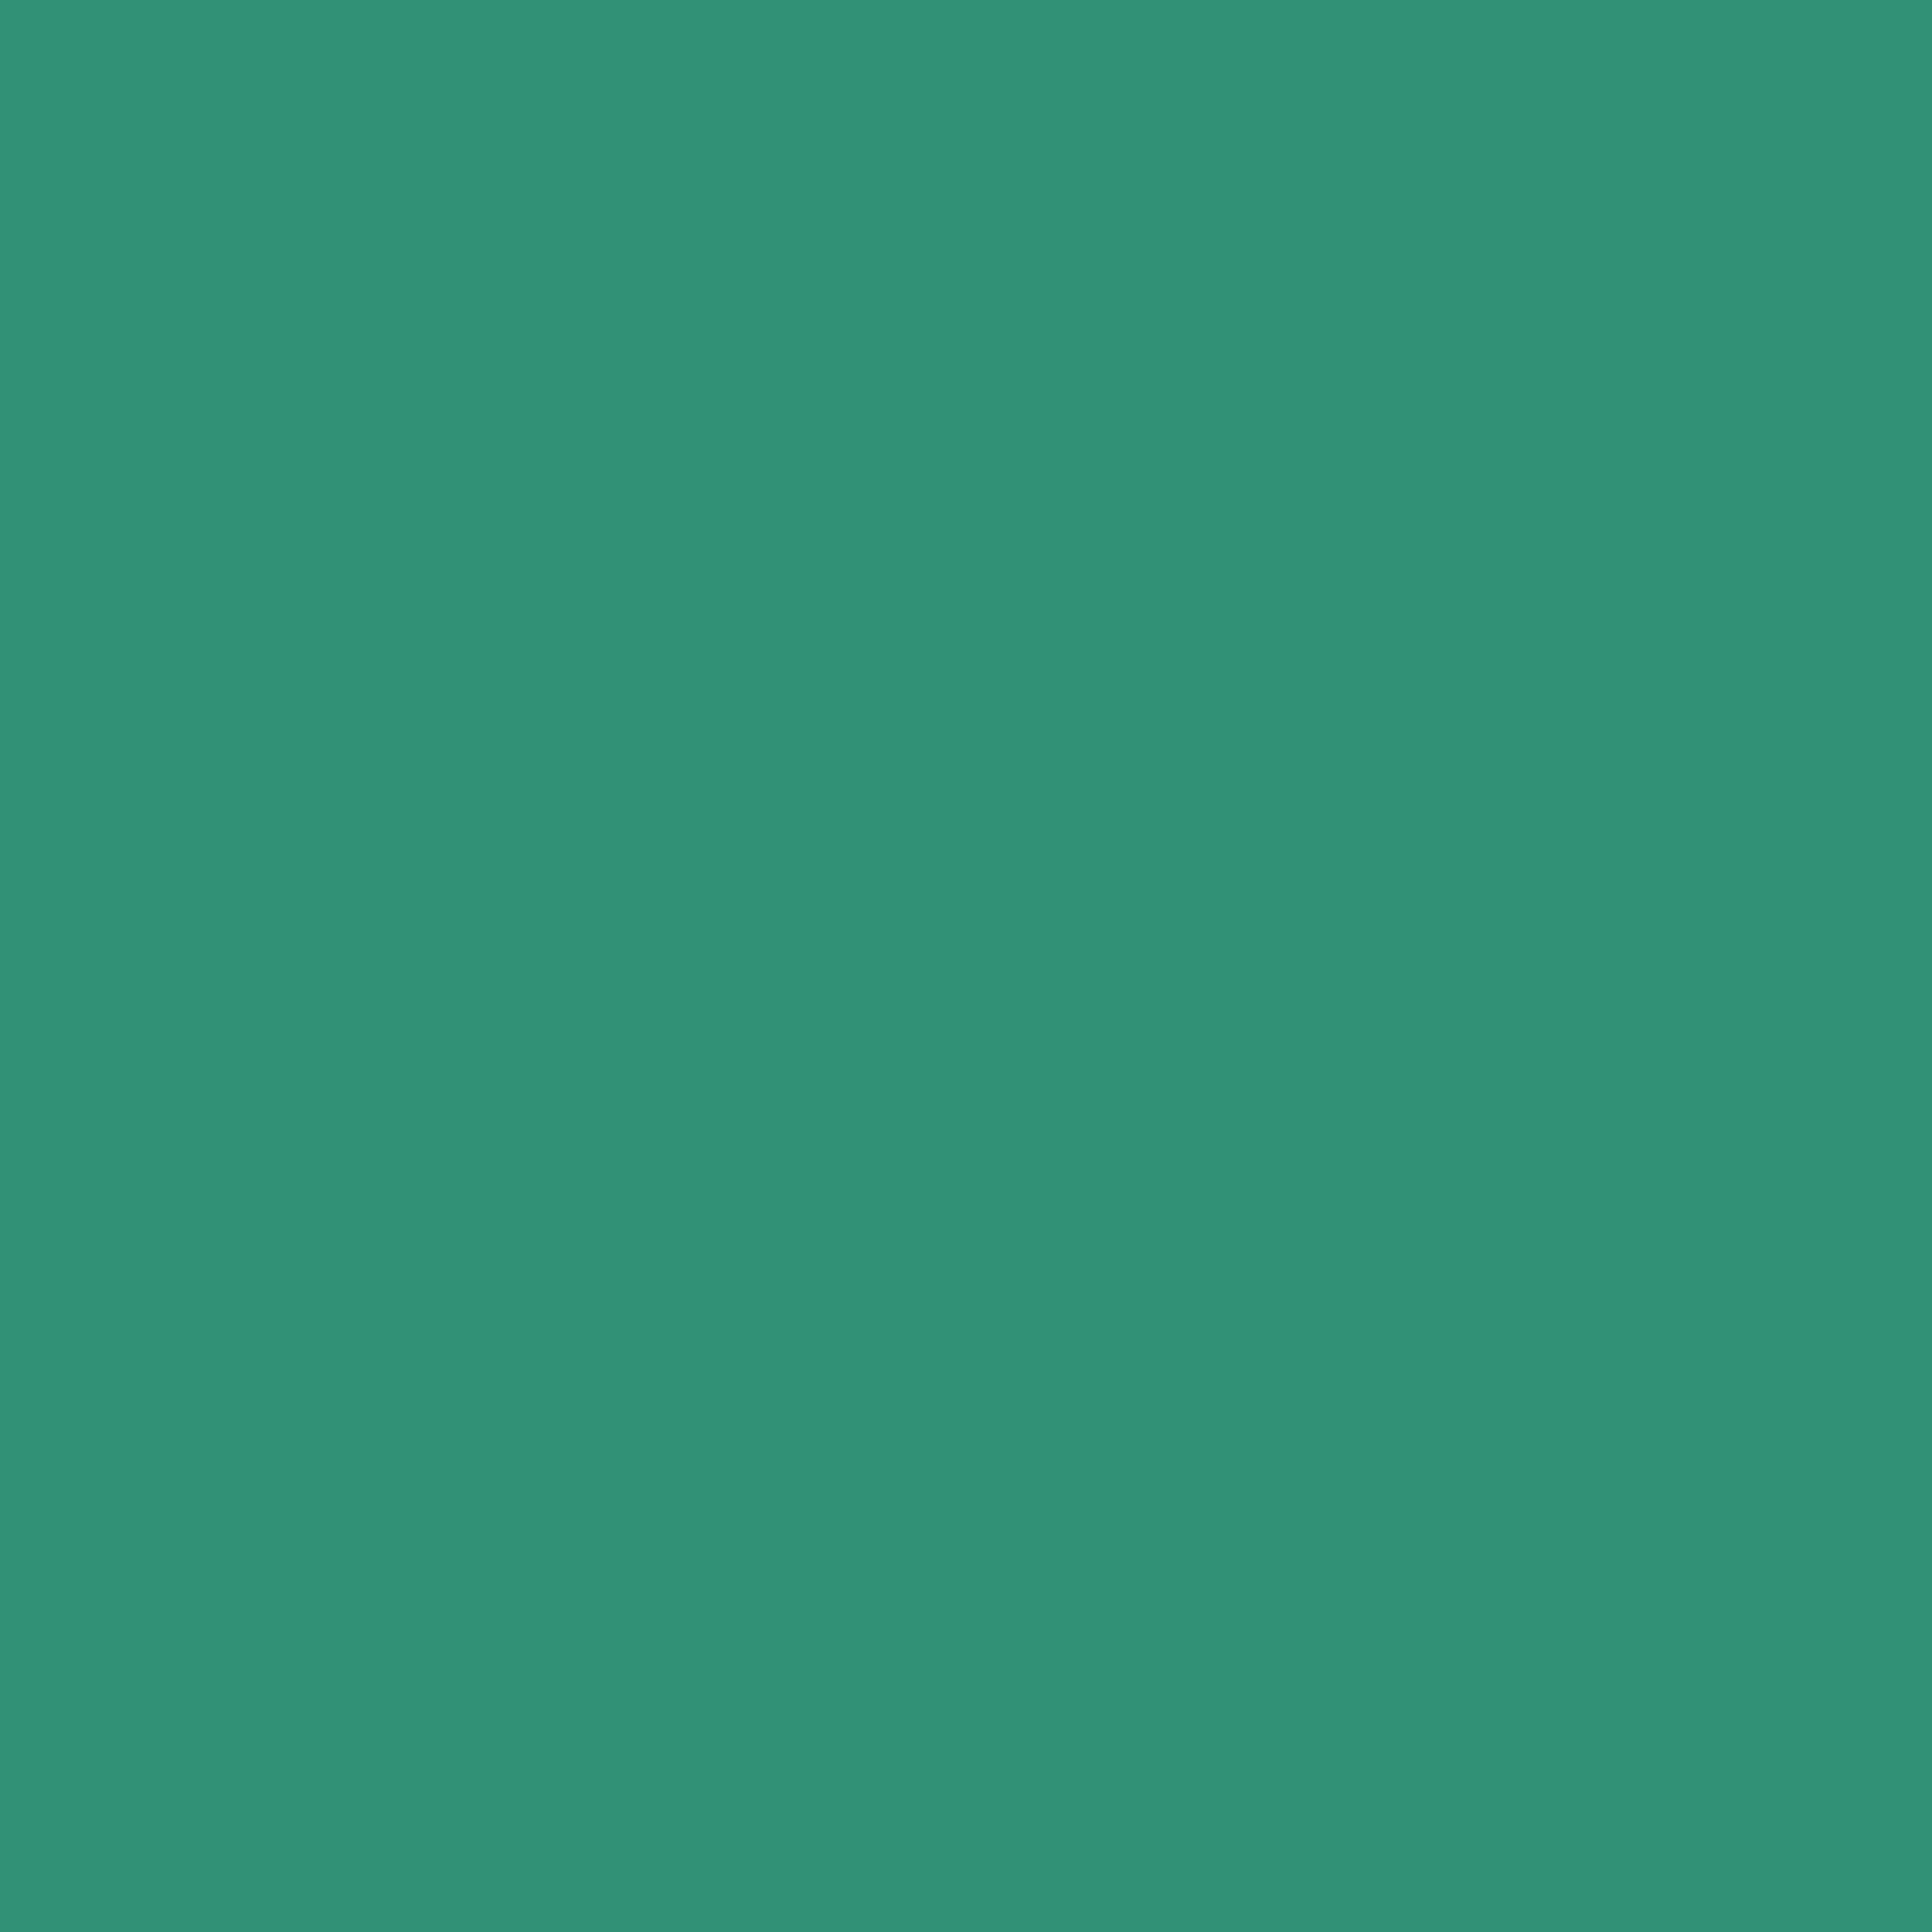 2048x2048 Illuminating Emerald Solid Color Background